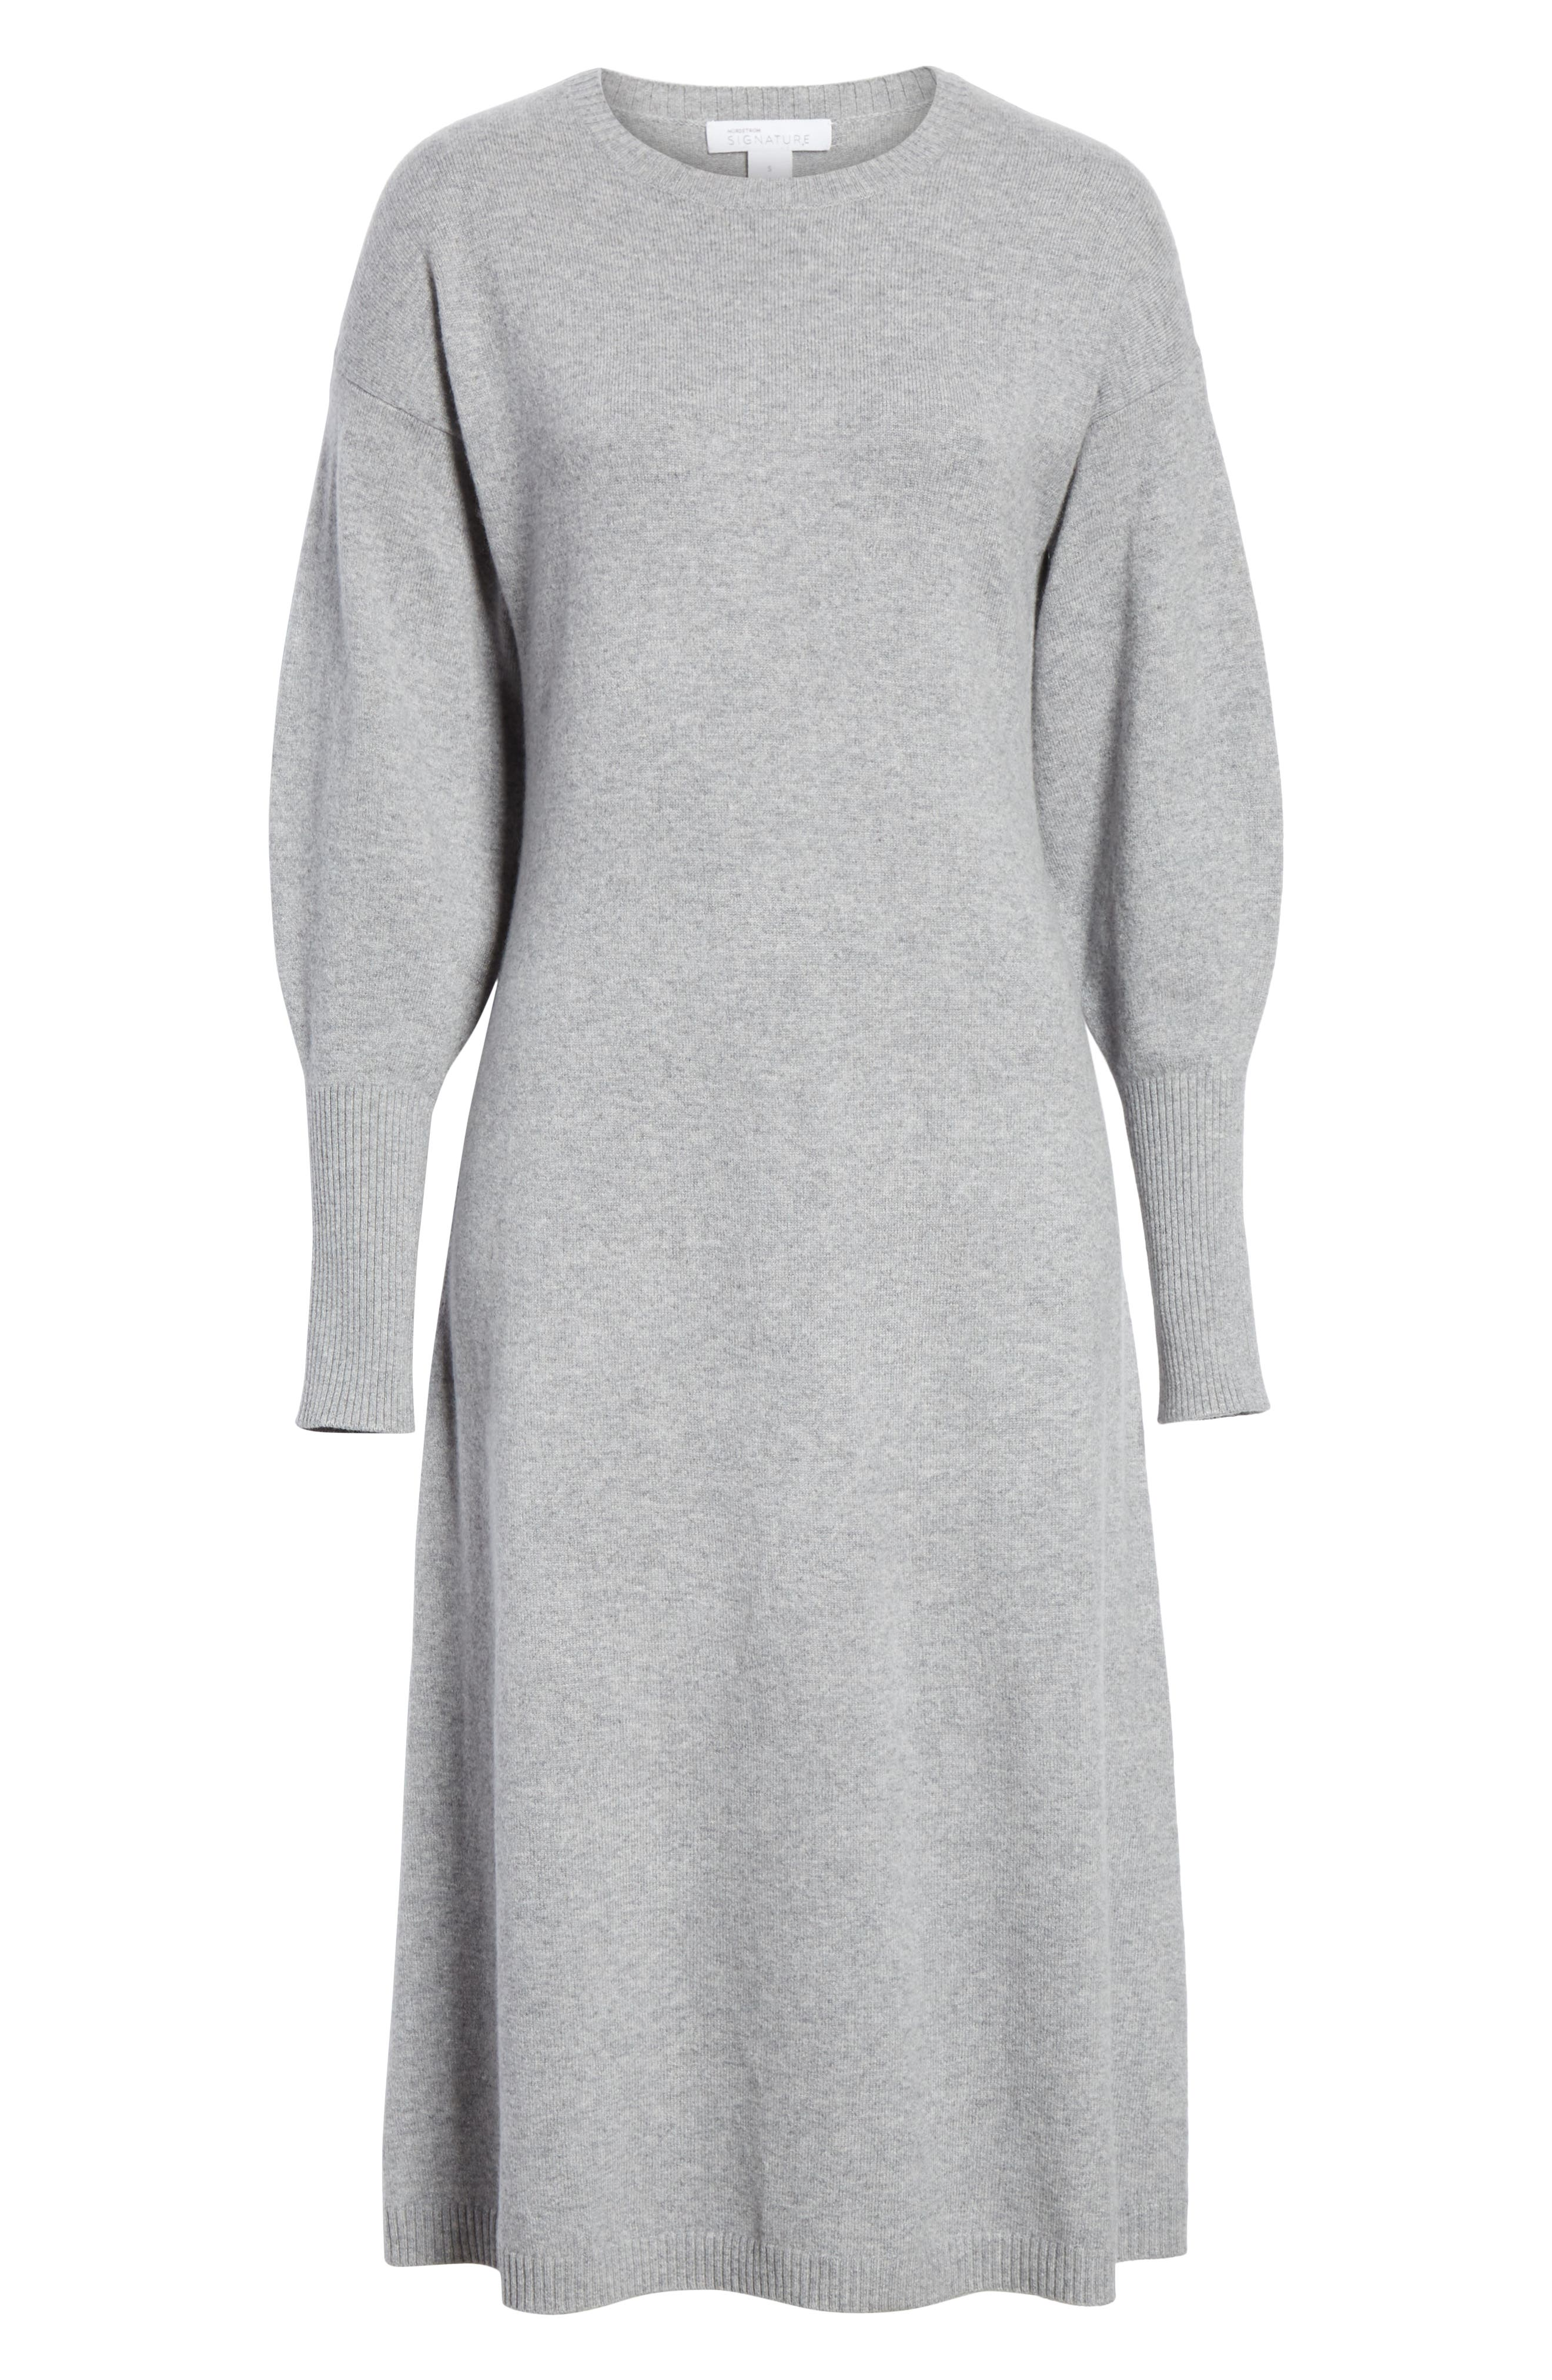 Cashmere Blend Sweater Dress,                             Alternate thumbnail 7, color,                             030